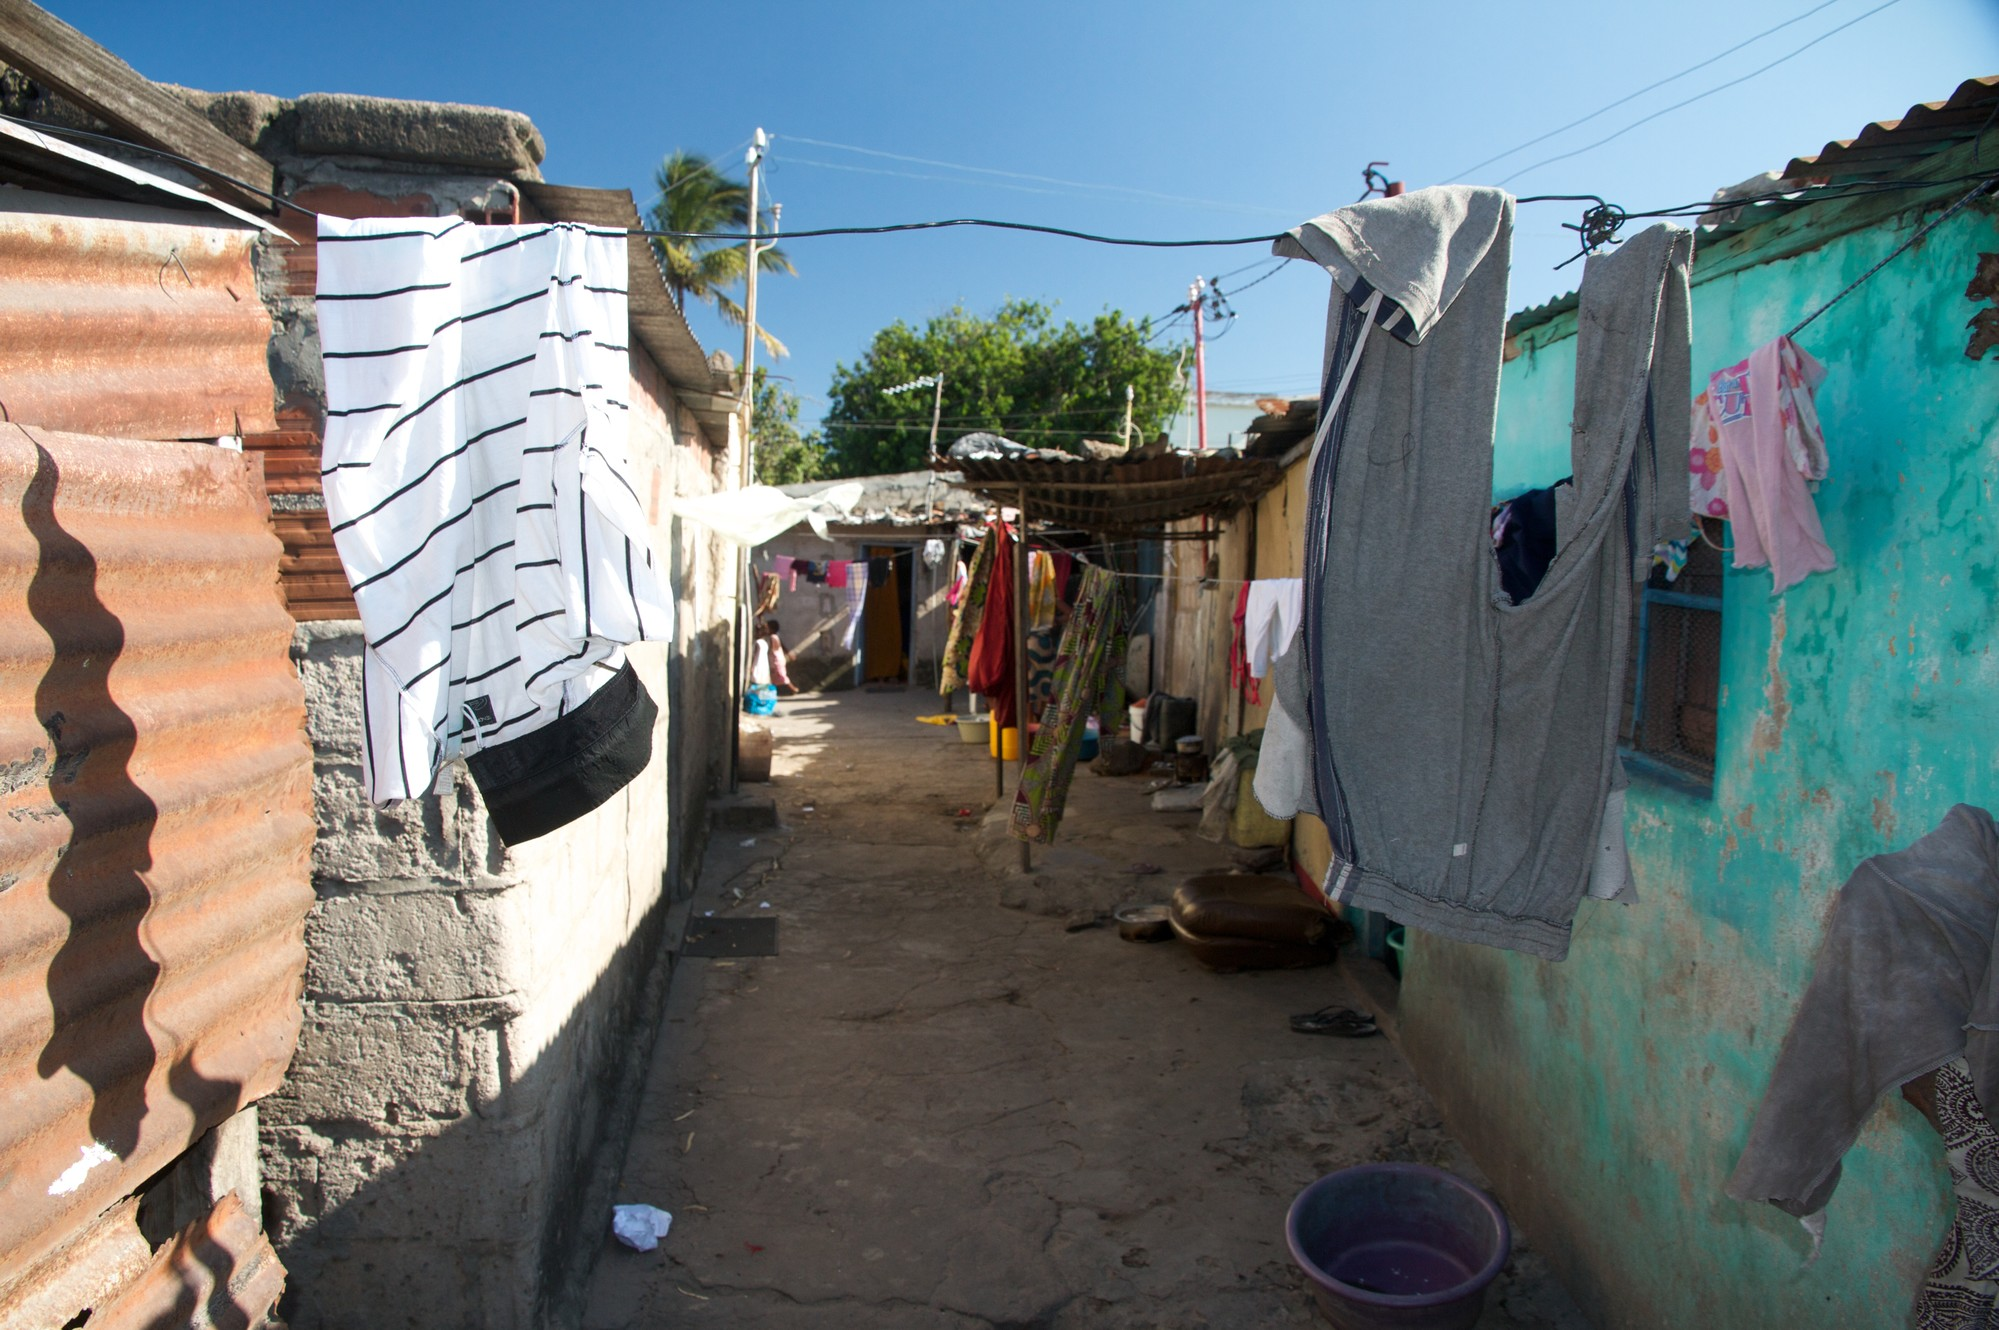 Street view of a peri-urban area in Maputo, Mozambique